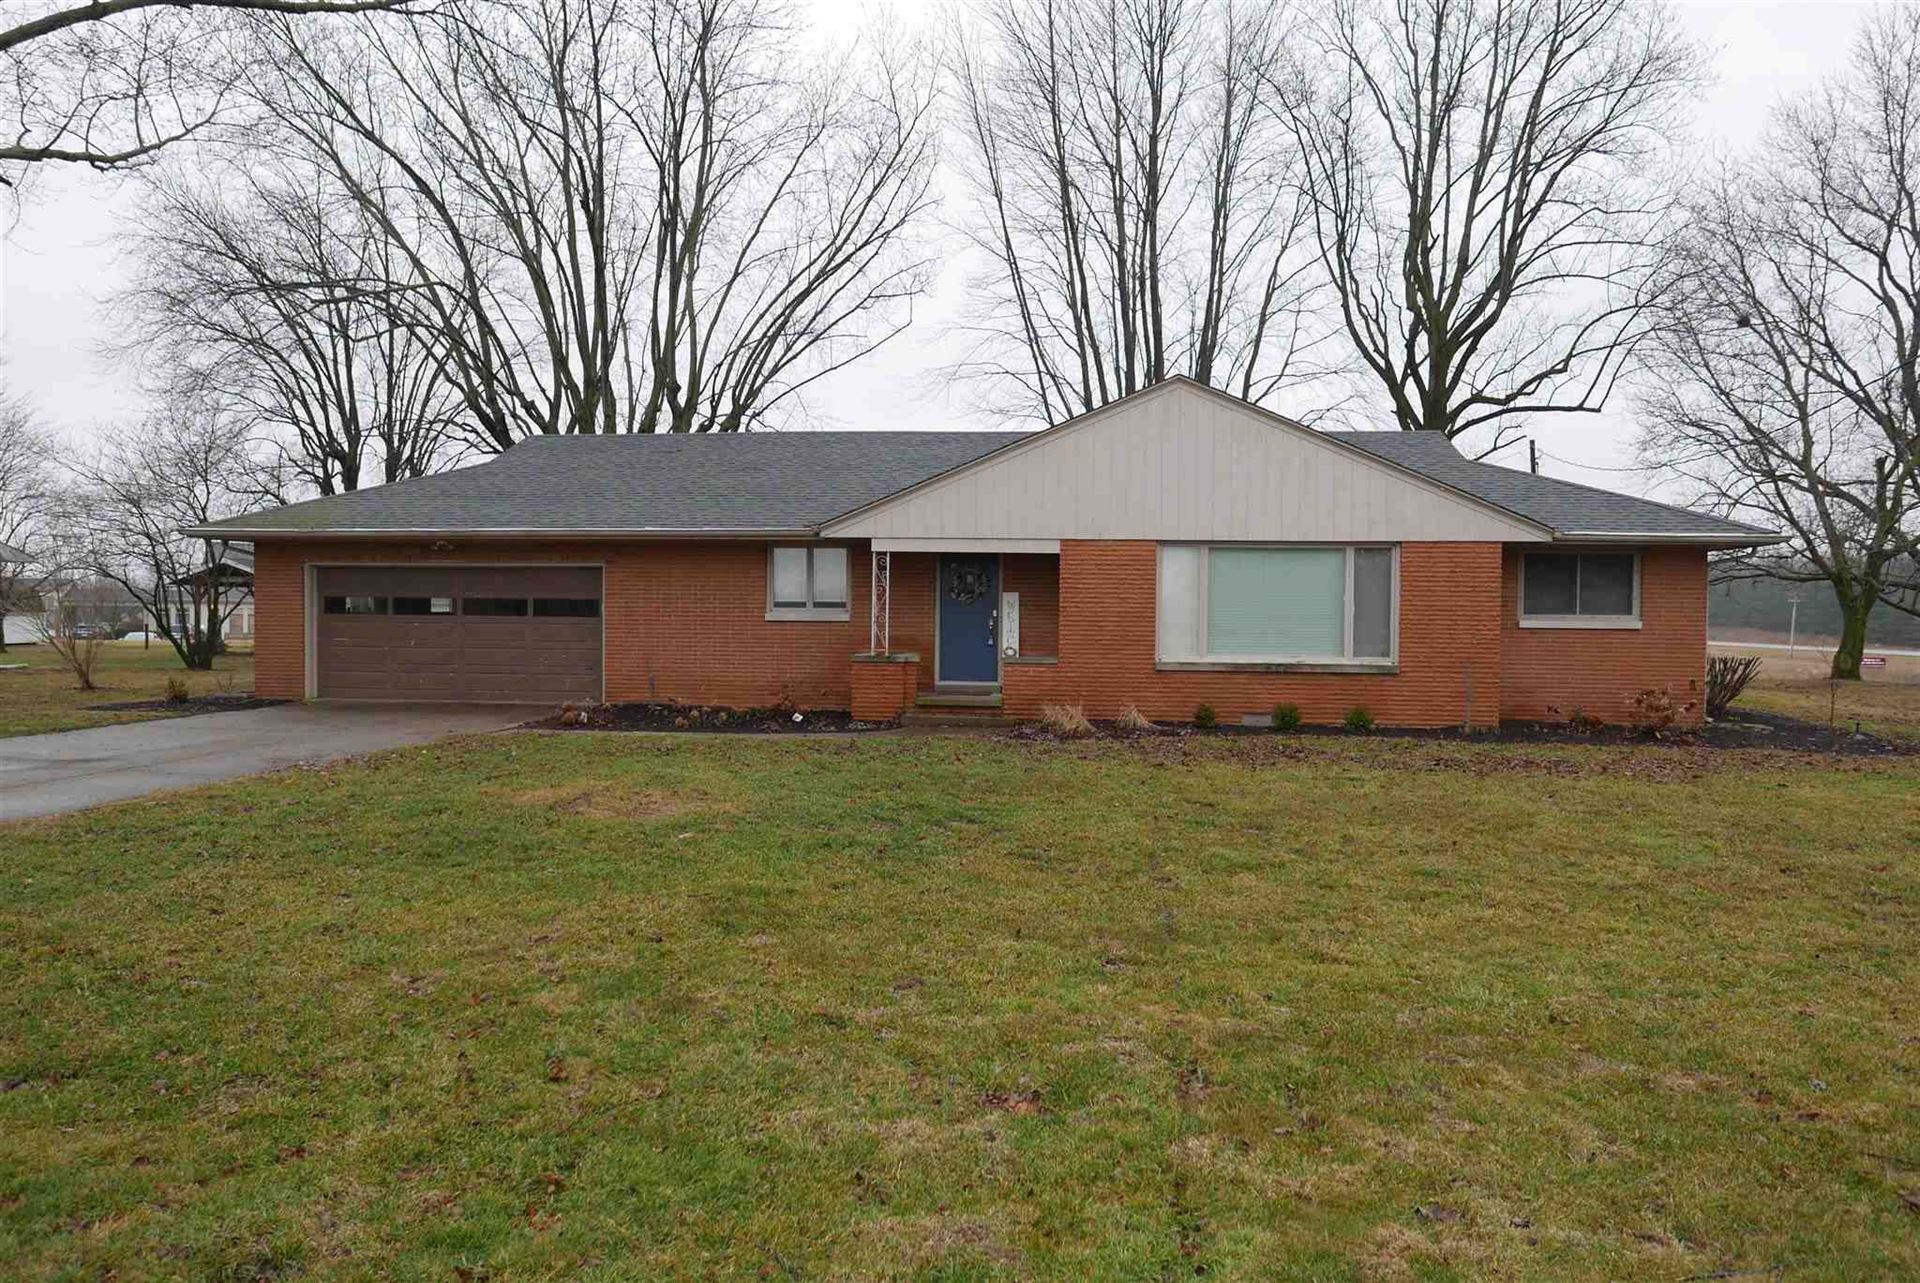 Photo of 1408 Beckley Street, North Manchester, IN 46962 (MLS # 202007007)